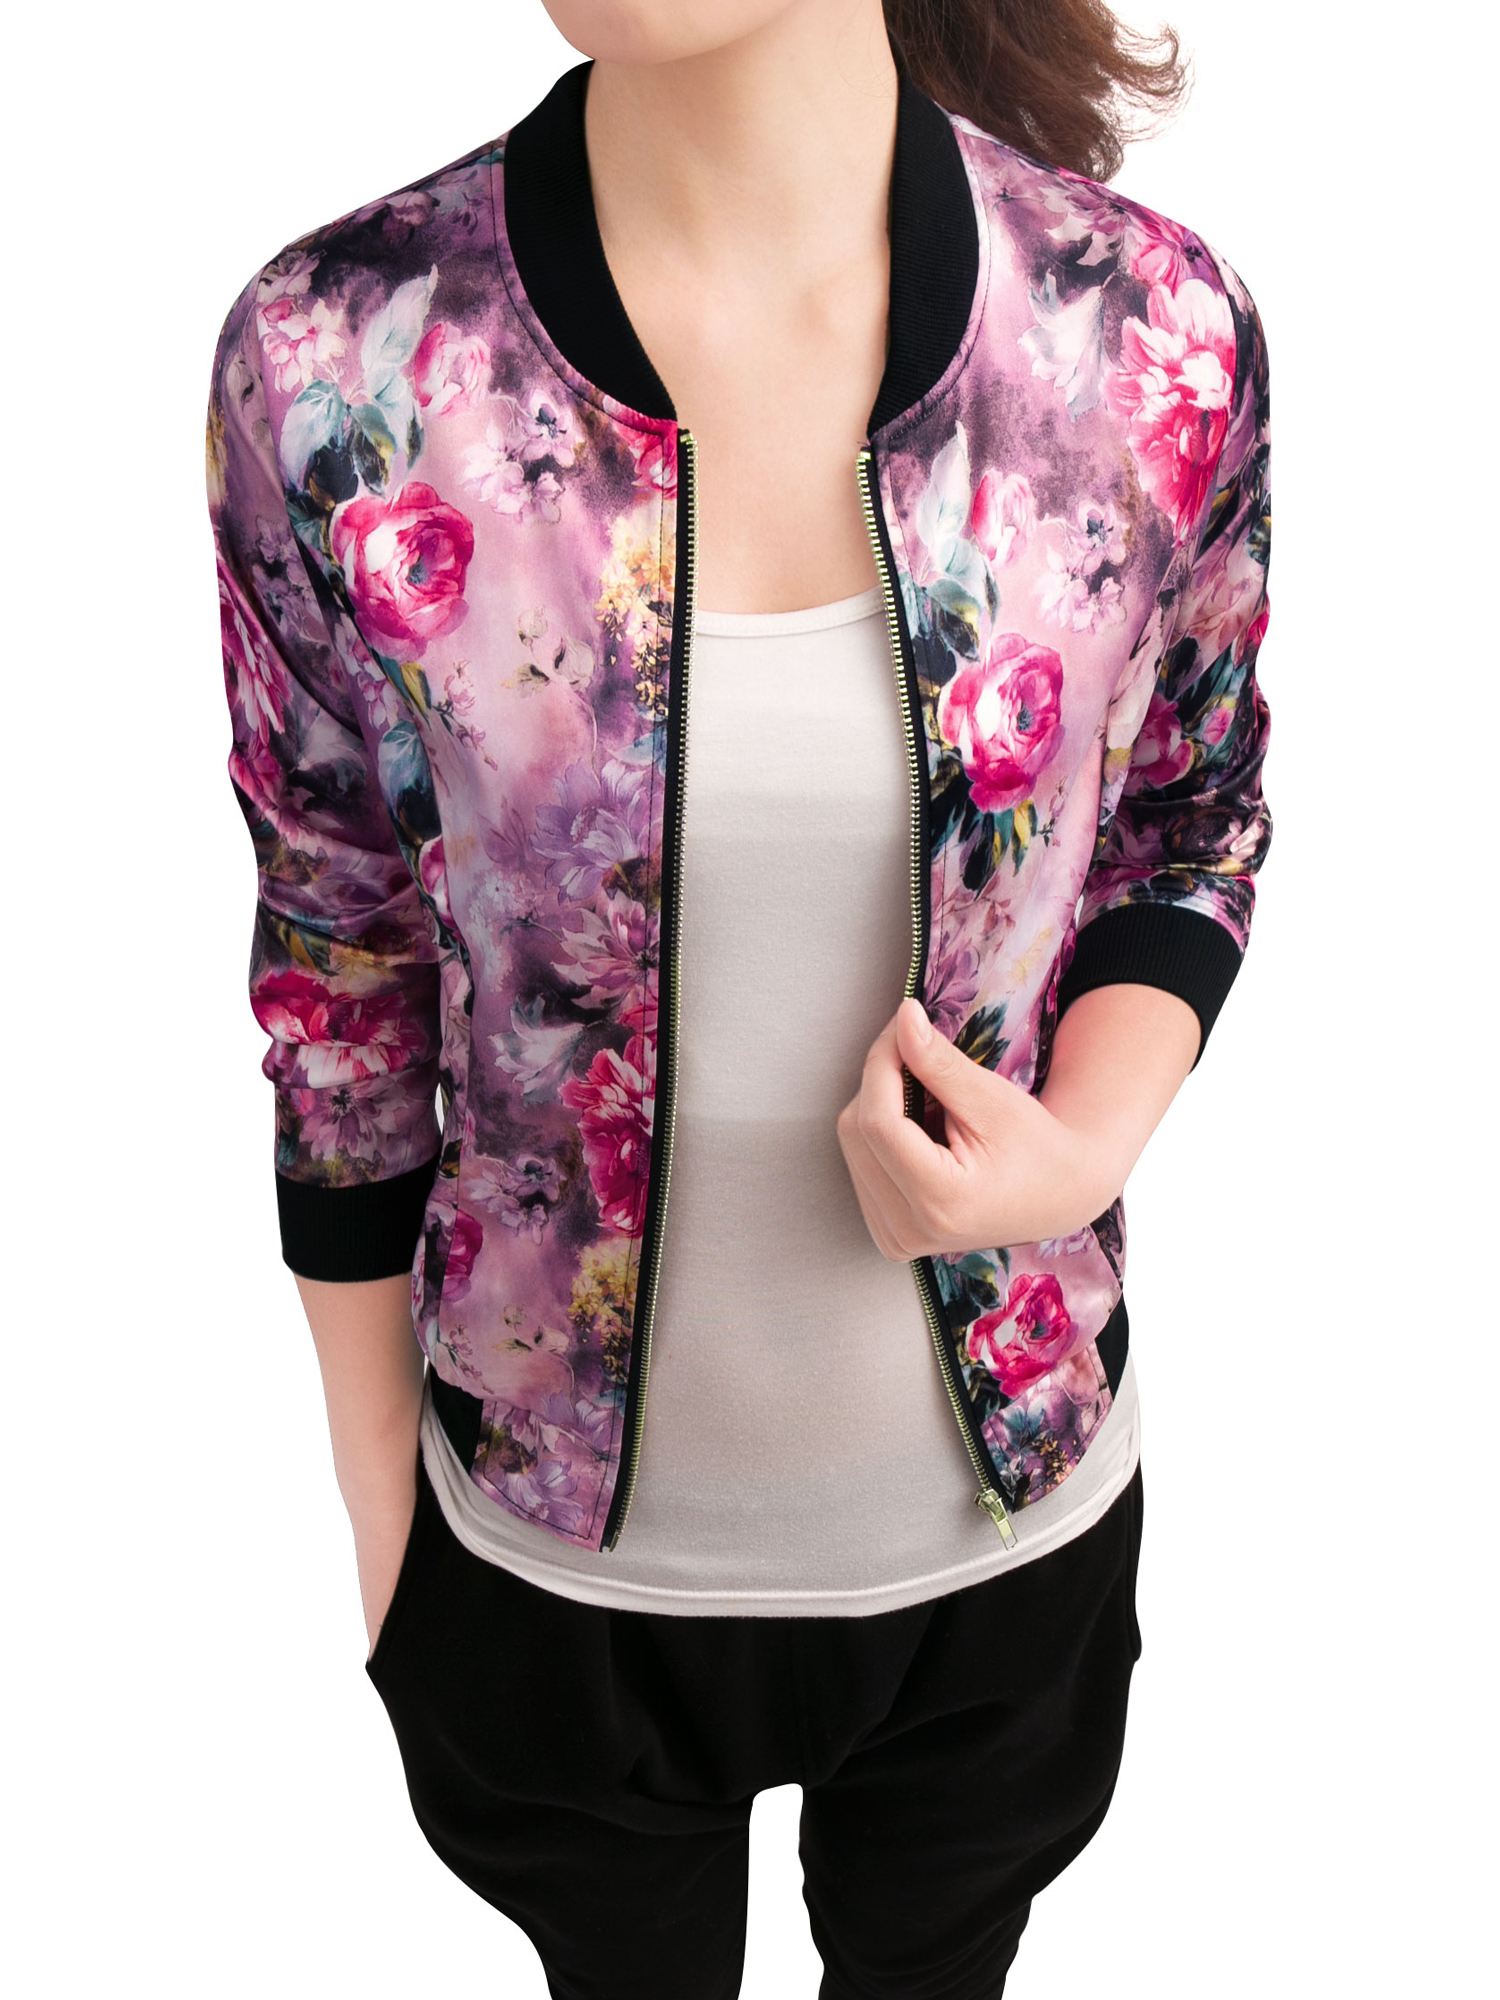 Women Rib Knit Collar Zipper Fly Floral Print Fashion Jacket Fuchsia XS